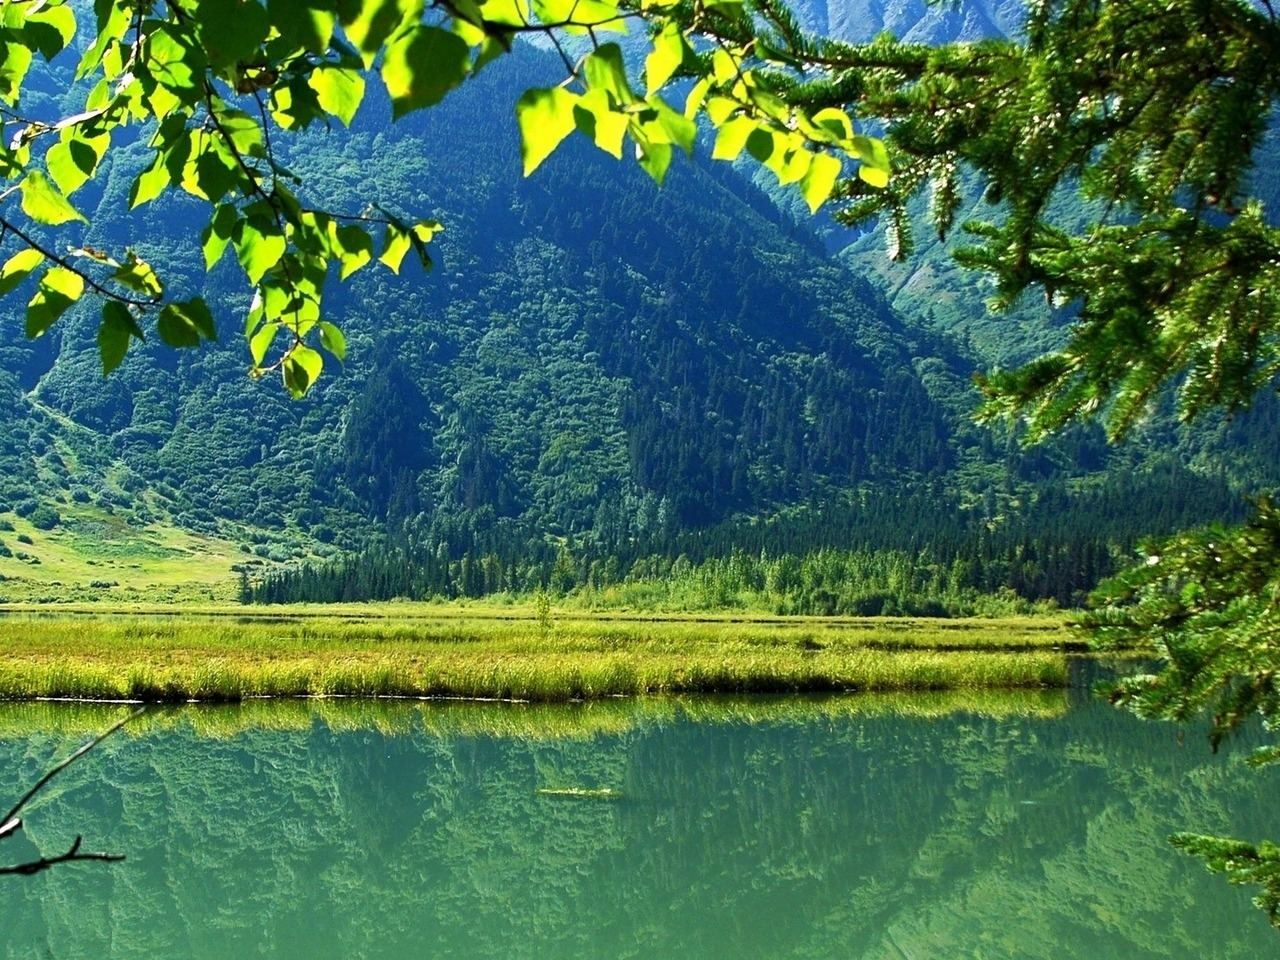 49117 download wallpaper Landscape, Nature, Mountains, Lakes screensavers and pictures for free